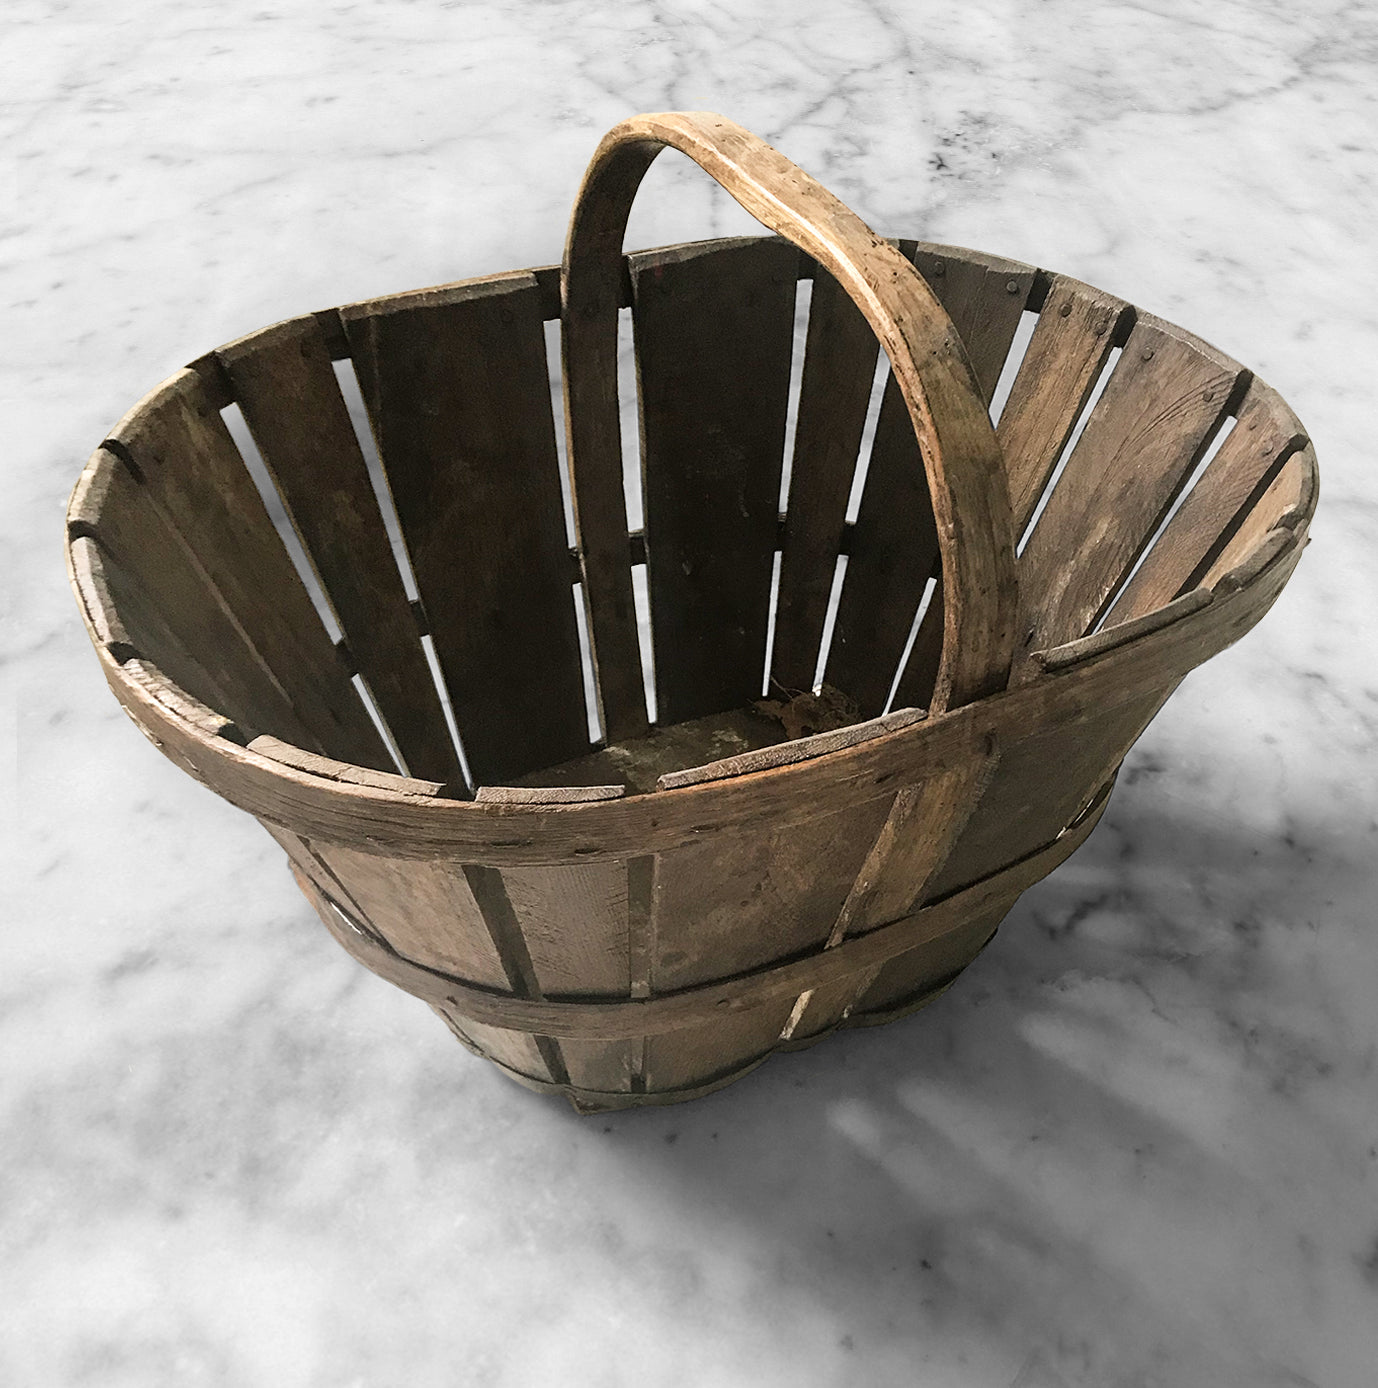 Period Devon Stave Basket